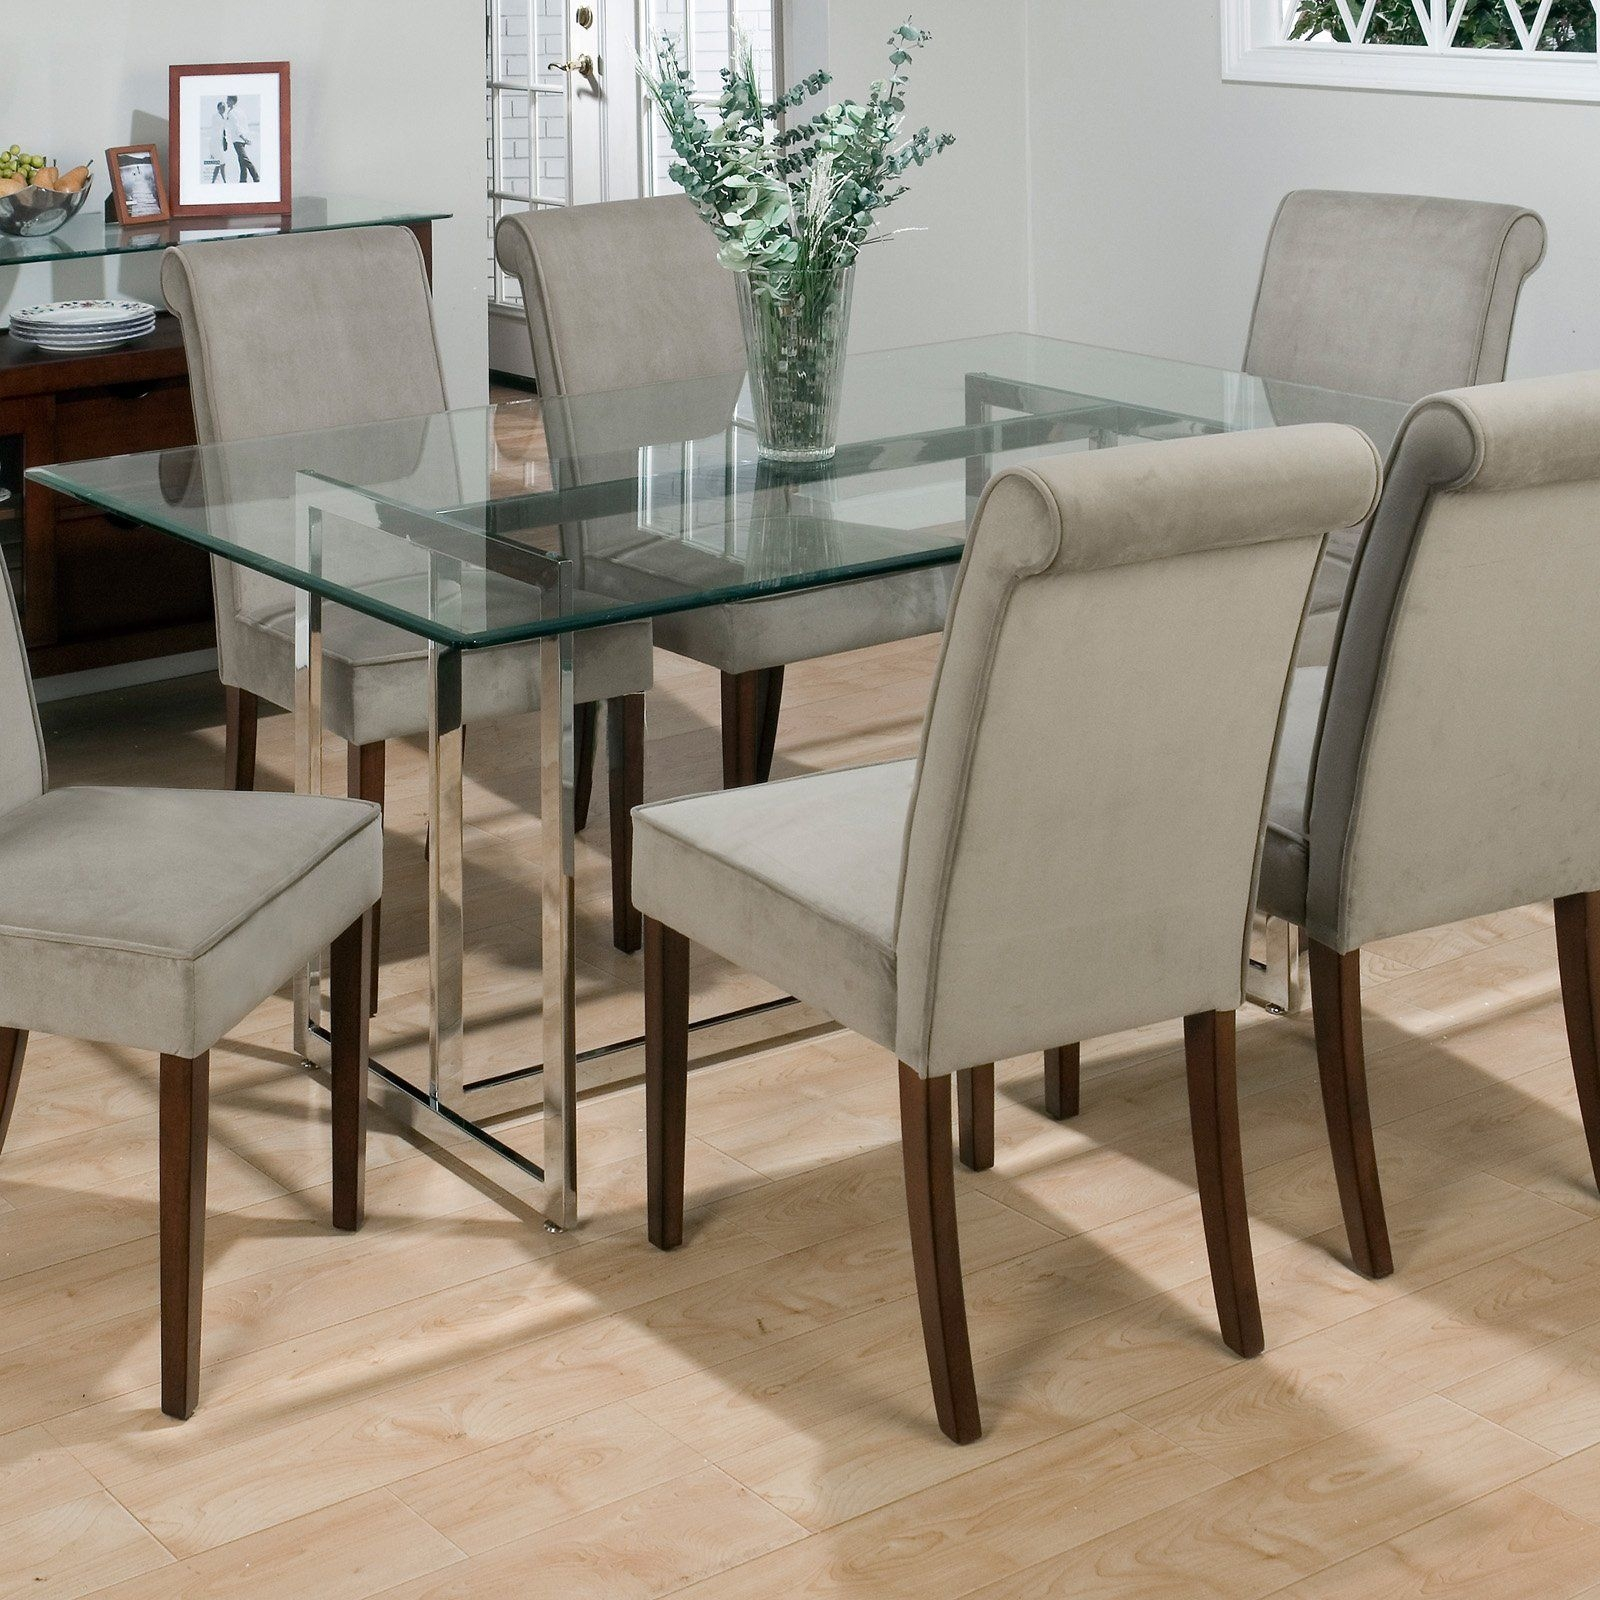 Bethel Rectanglar Glass Top Dining Table Contemporary Dining Tables